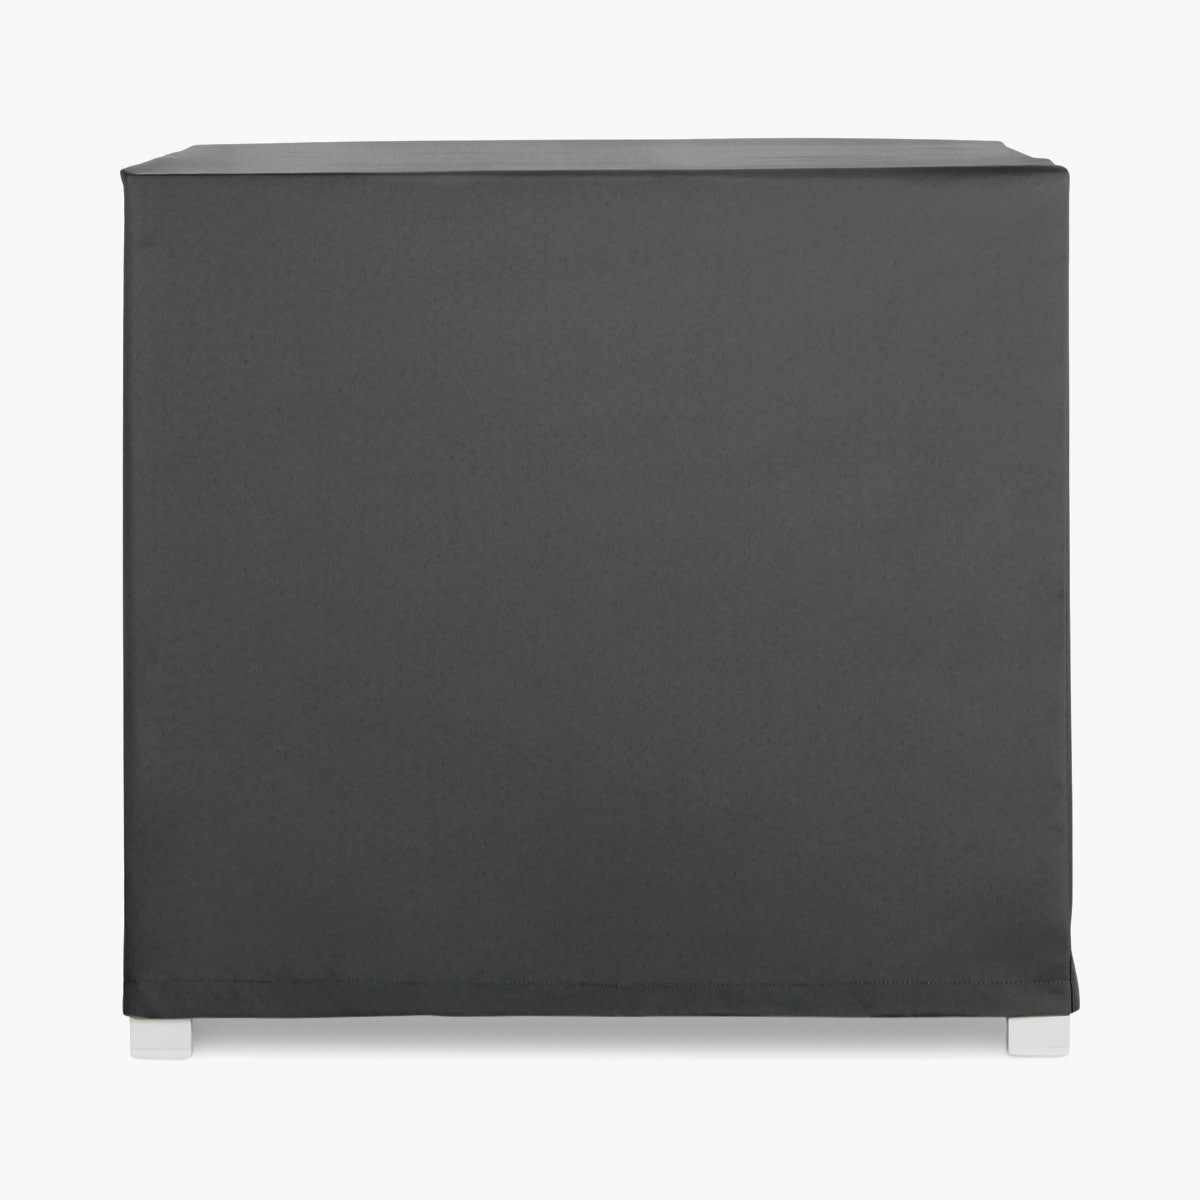 Eos Dining Table Cover